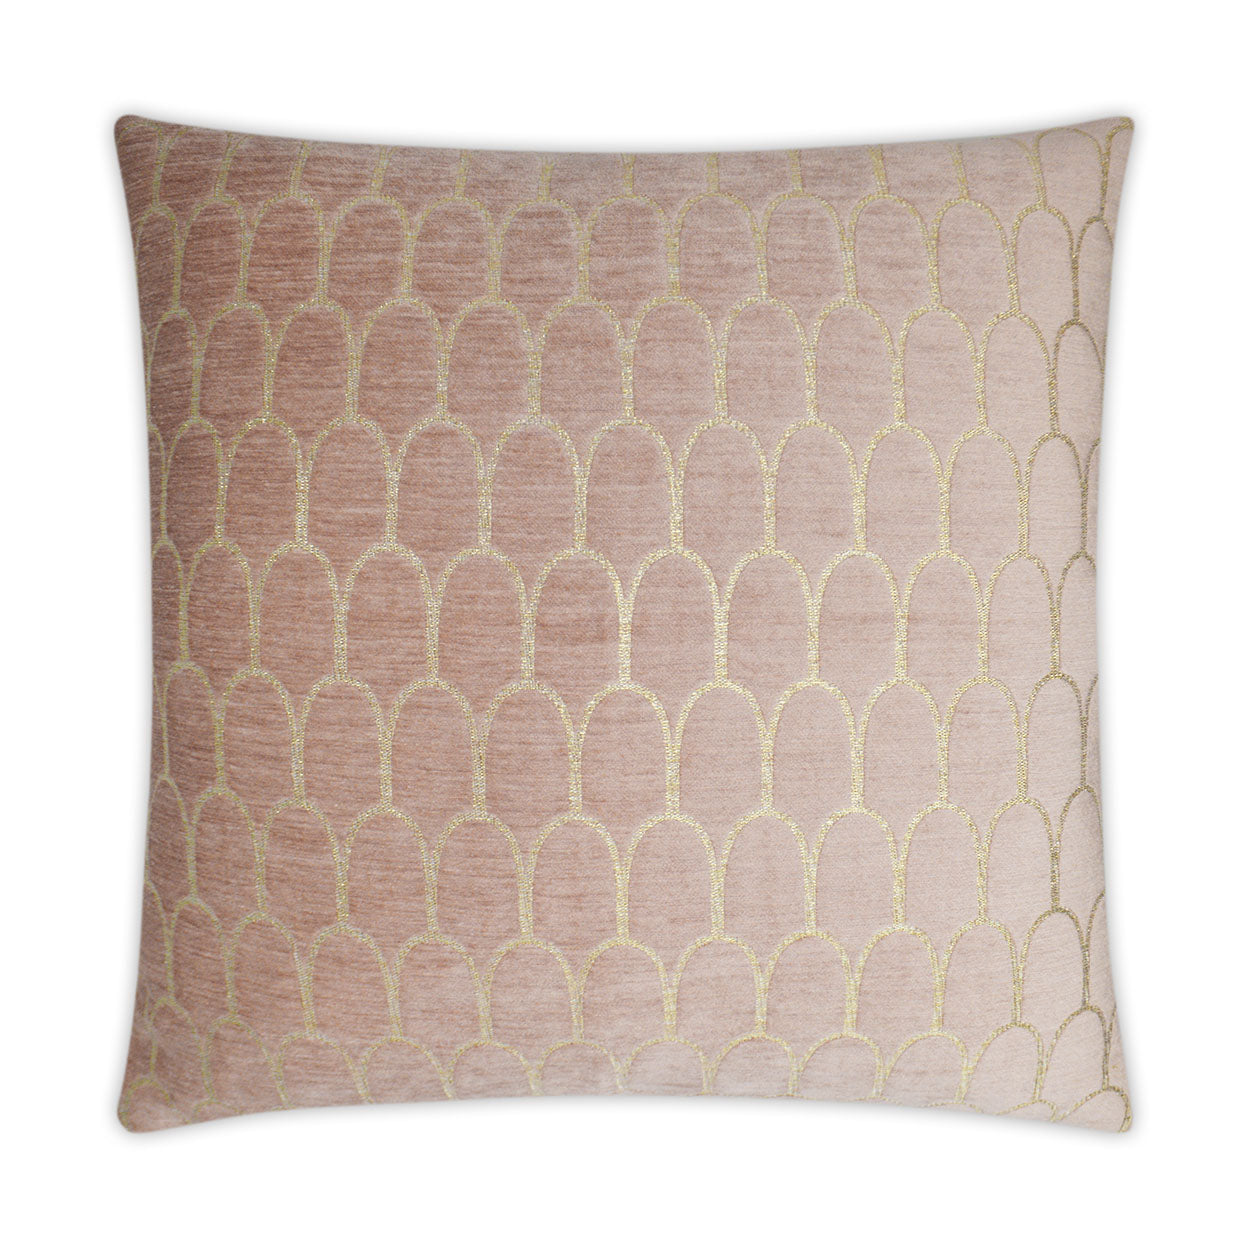 Crisanta Blush Pillow